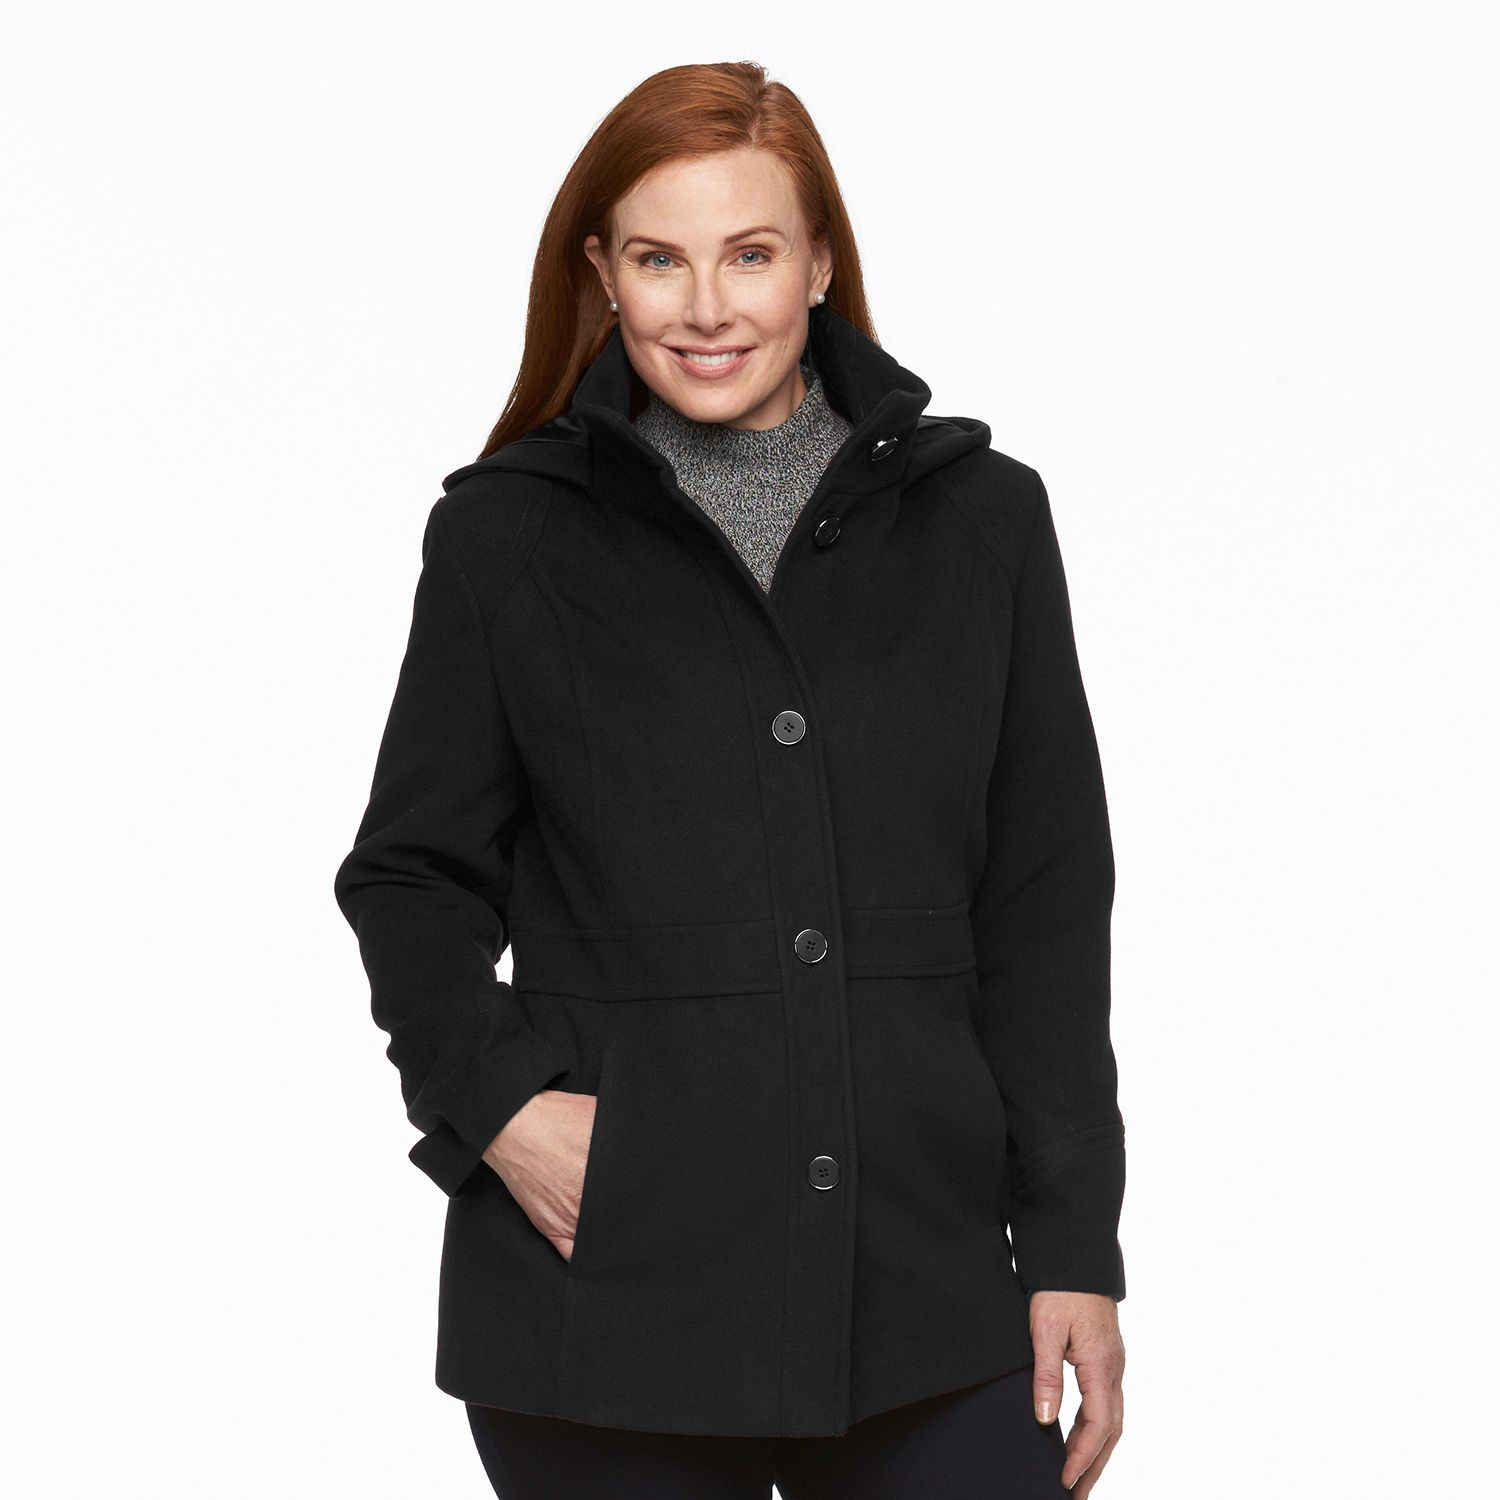 Hooded Pea Coats For Women 9OTFOP